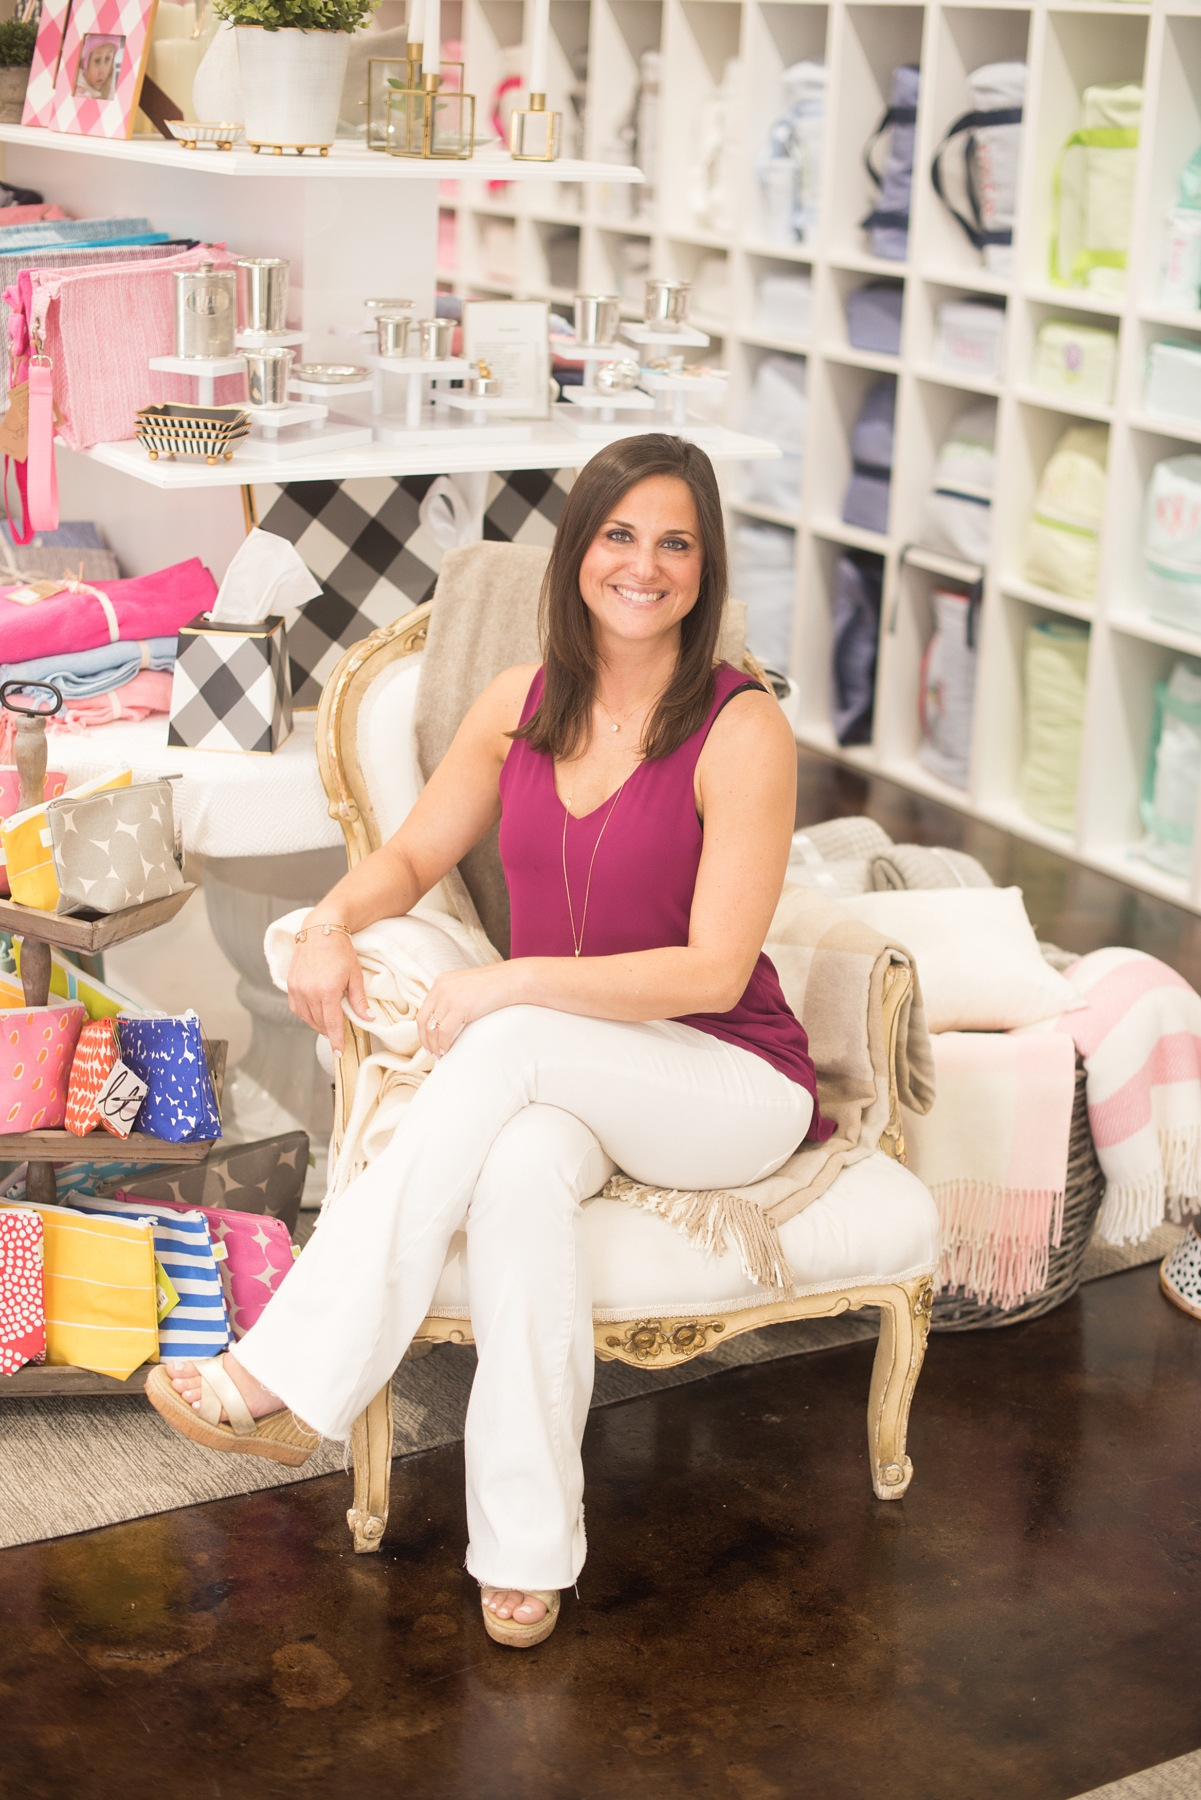 Betsy Bayer, Owner of B. Bayer & Co. Monogramming & Gifts